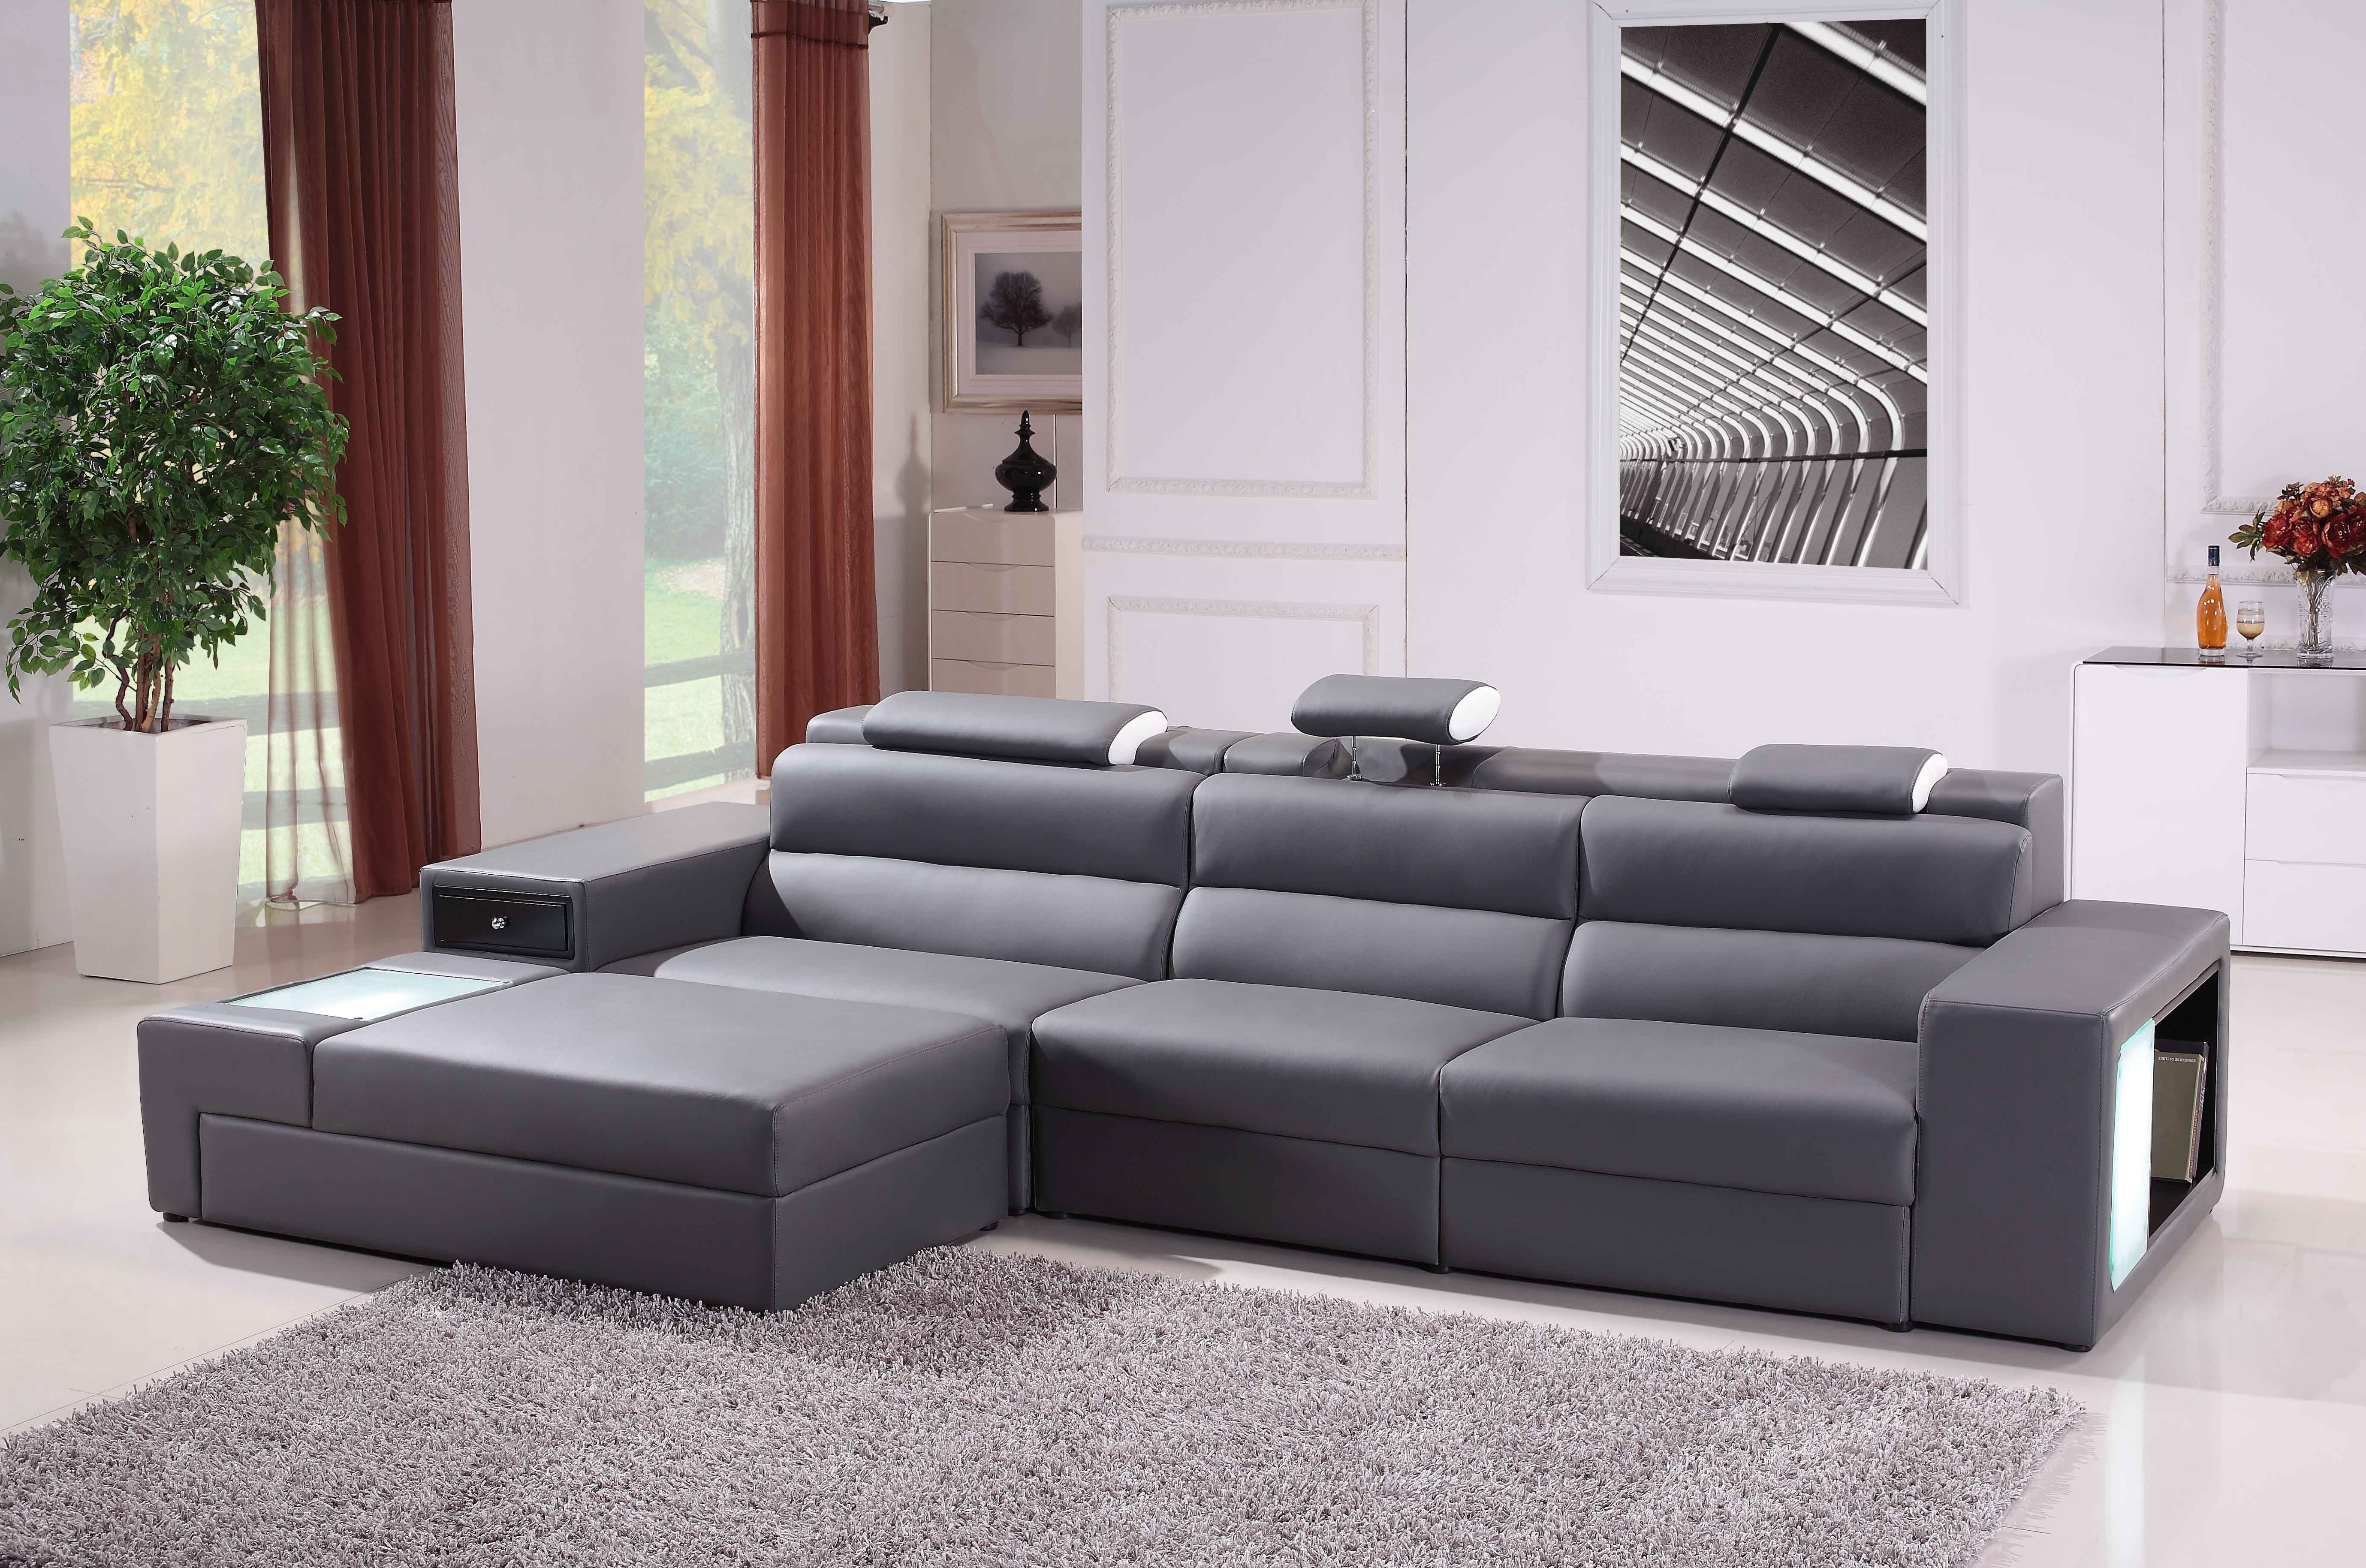 Modern Grey Leather Sofa Sam Levitz Furniture For Gray Decorations Intended For Widely Used Sam Levitz Sectional Sofas (View 12 of 20)